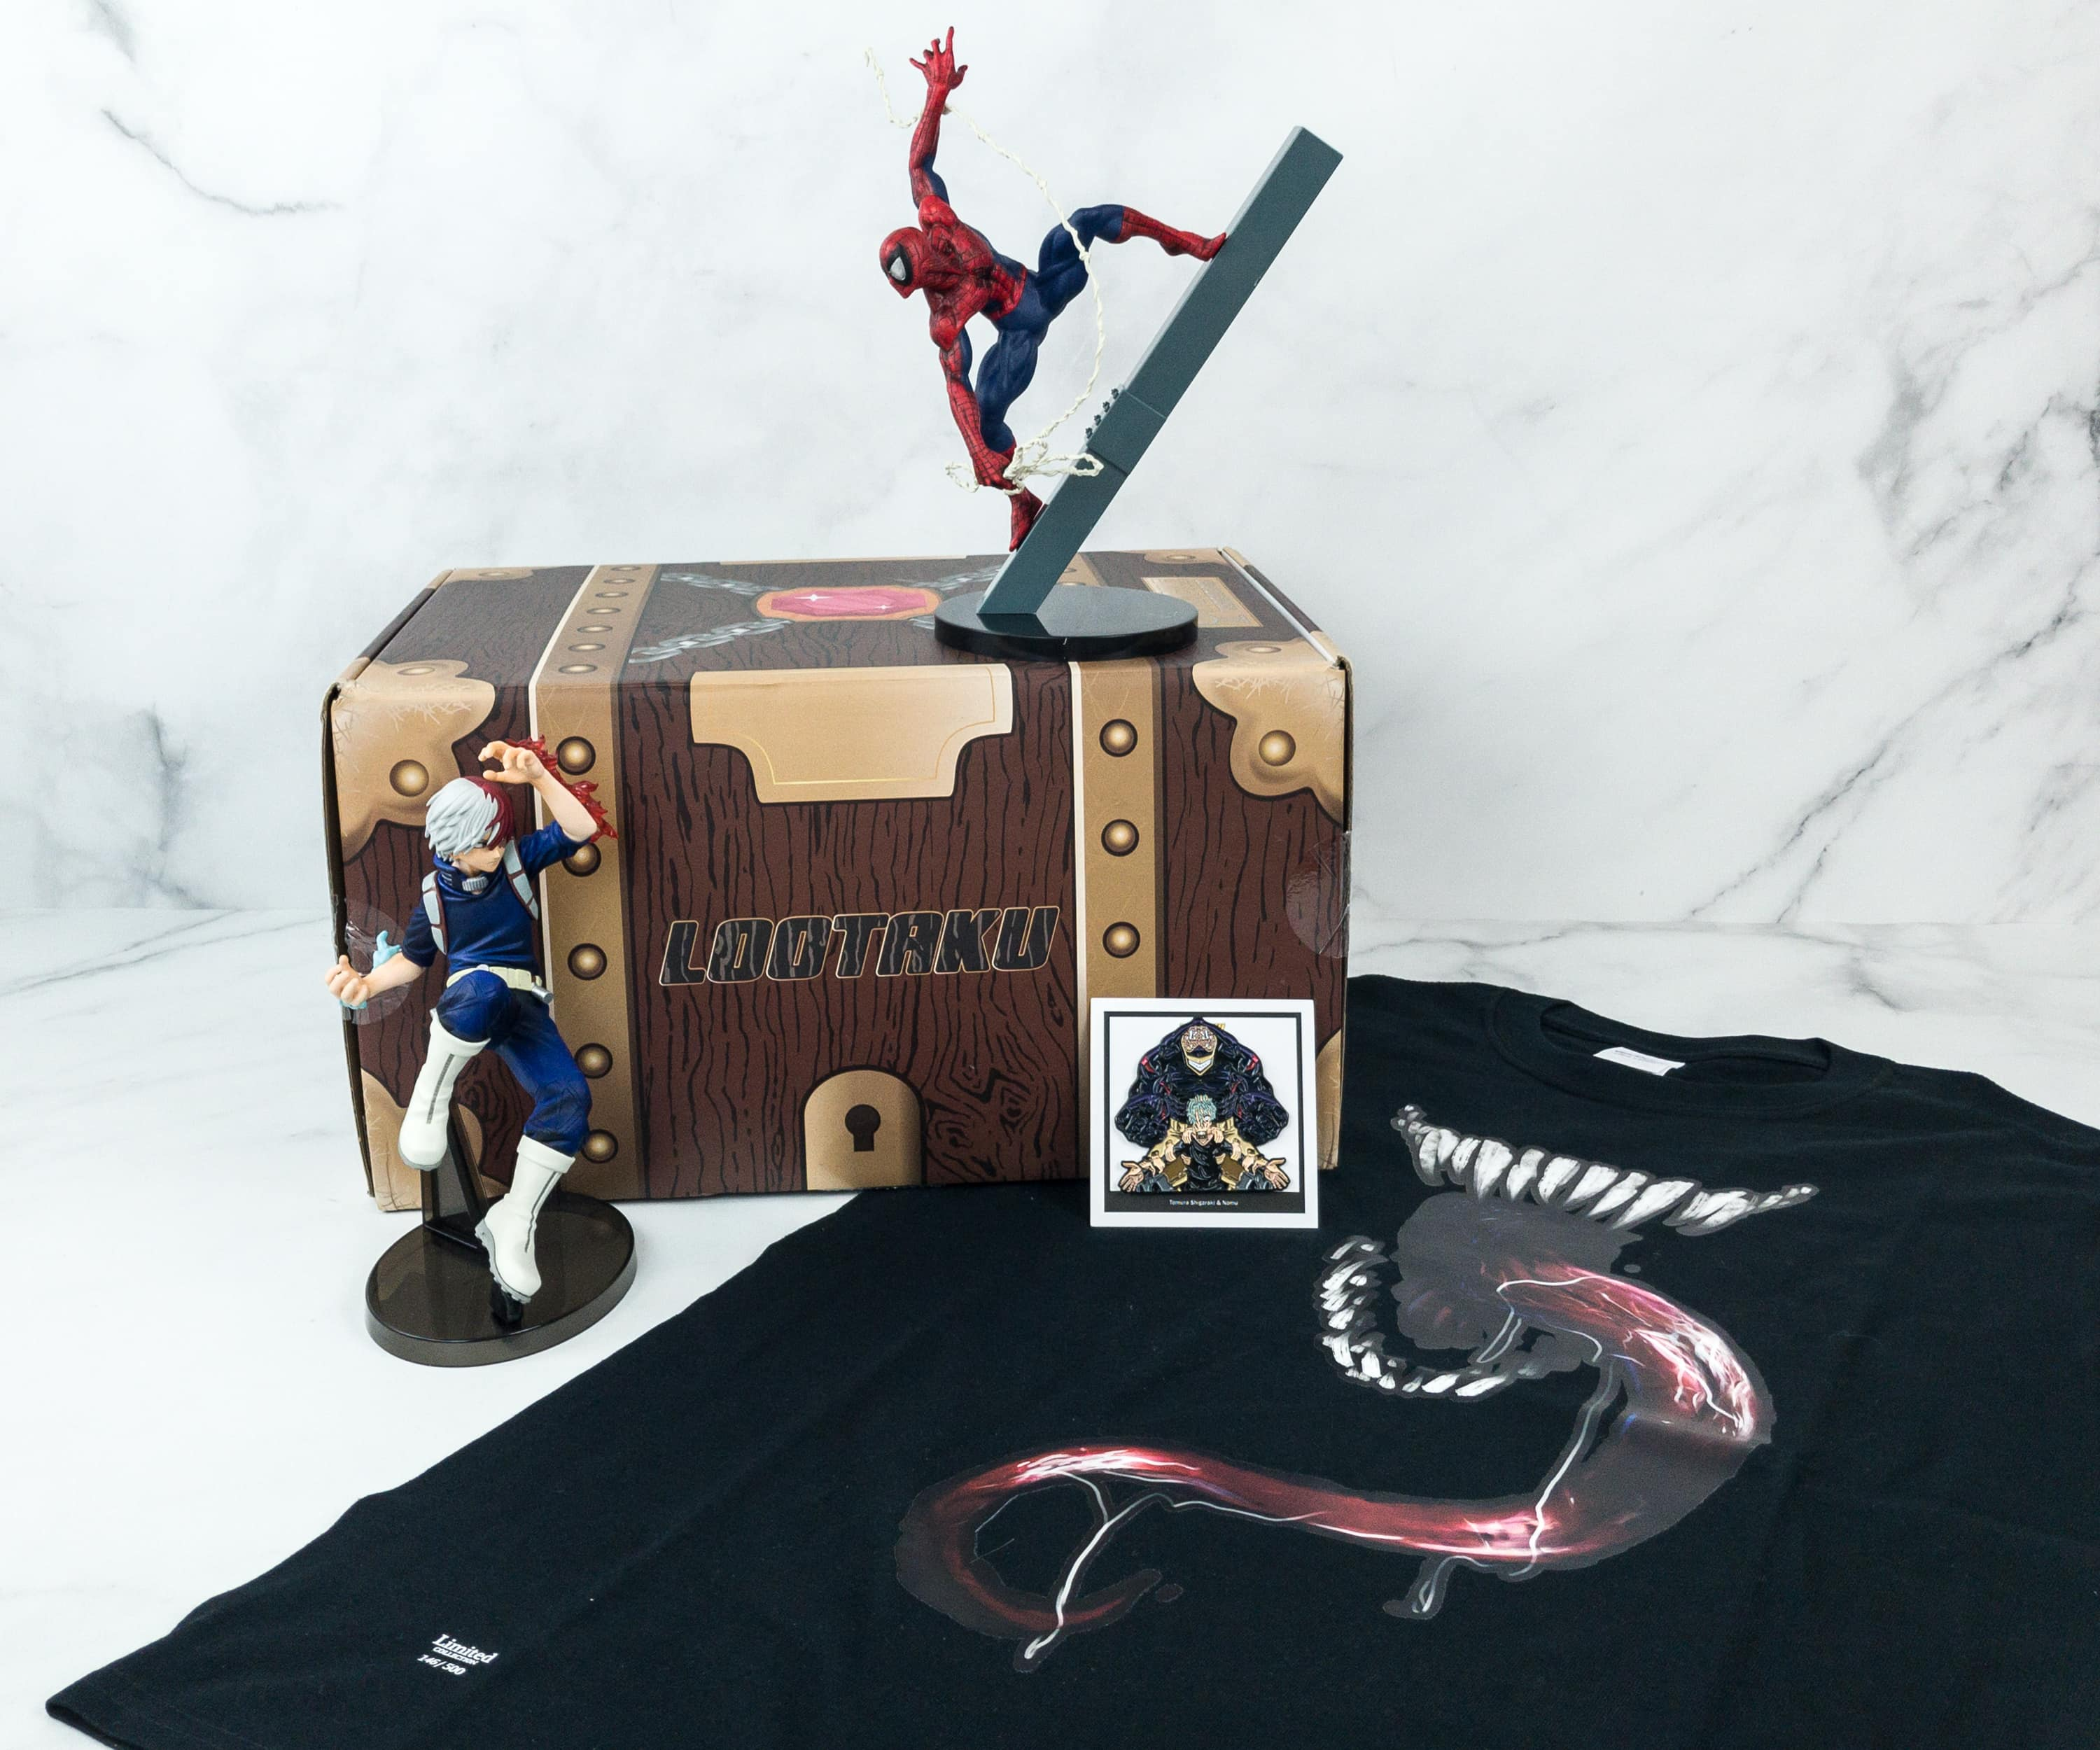 Lootaku January 2019 Subscription Box Review & Coupon